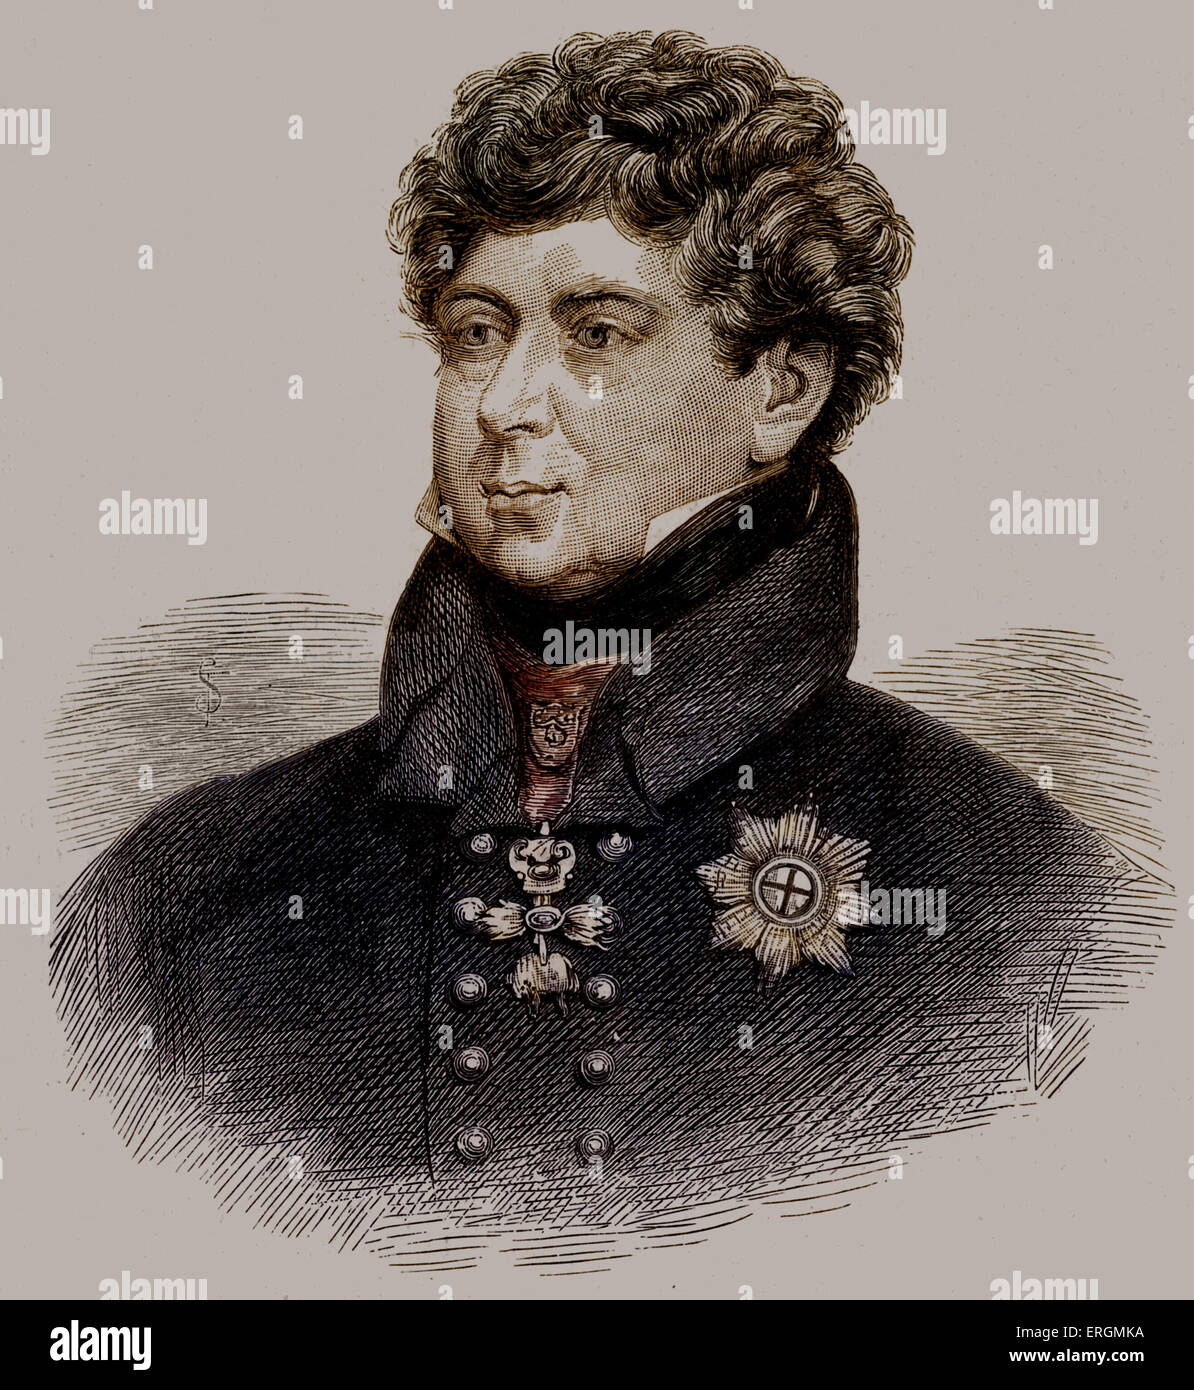 King George IV portrait  (Reigned 1820 - 1830). George acted as Regent for his father from 1811-1820.c - Stock Image